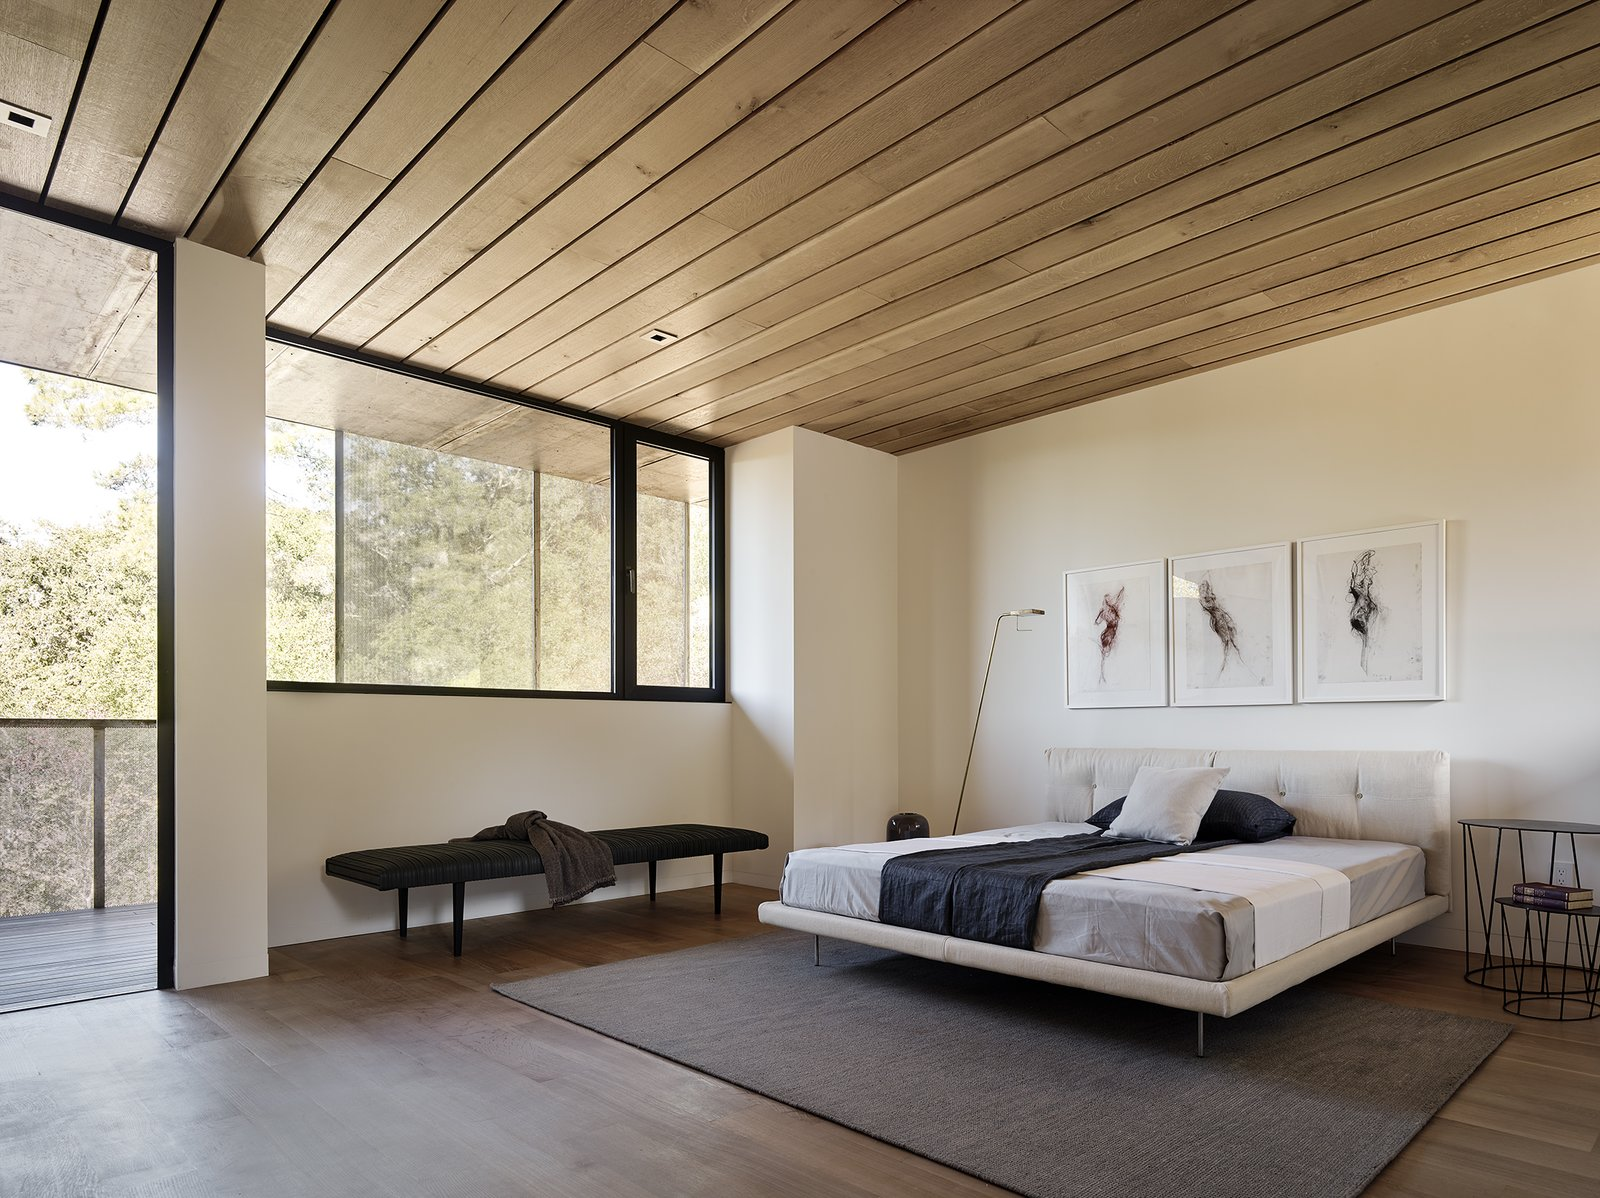 Bedroom, Bed, Medium Hardwood Floor, Lamps, Floor Lighting, Rug Floor, Bench, Night Stands, and Recessed Lighting A charcoal triptych by Gina Jacupke hangs above the Living Divani bed in the master suite.  Photo 10 of 14 in Nature Drove the Design of This Sculptural, Cor-Ten Steel House in Northern California